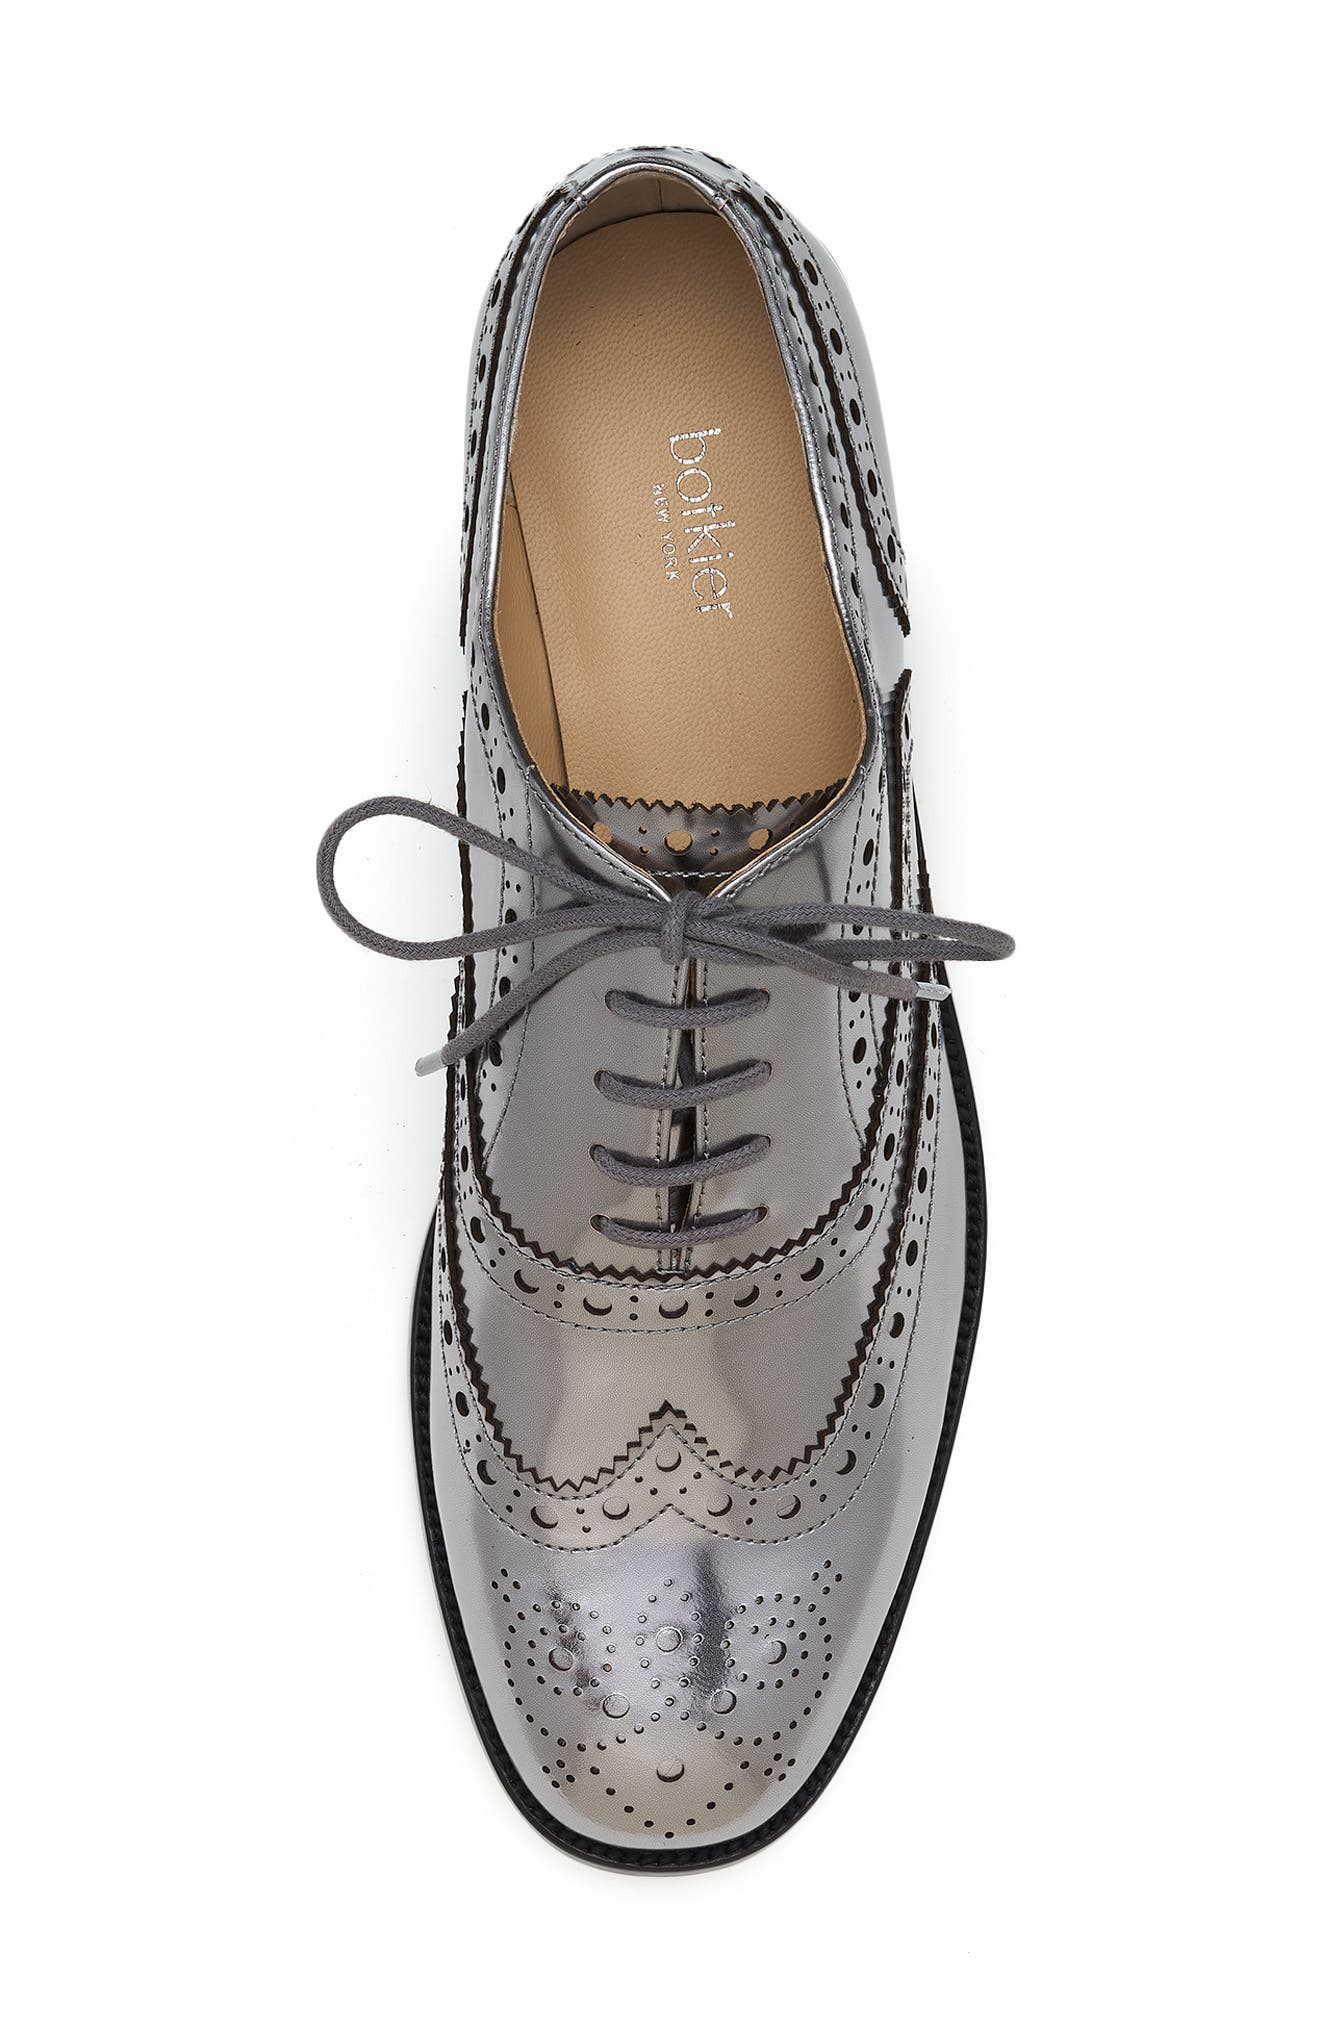 BOTKIER, Calista Metallic Wingtip Oxford, Alternate thumbnail 5, color, PEWTER METALLIC